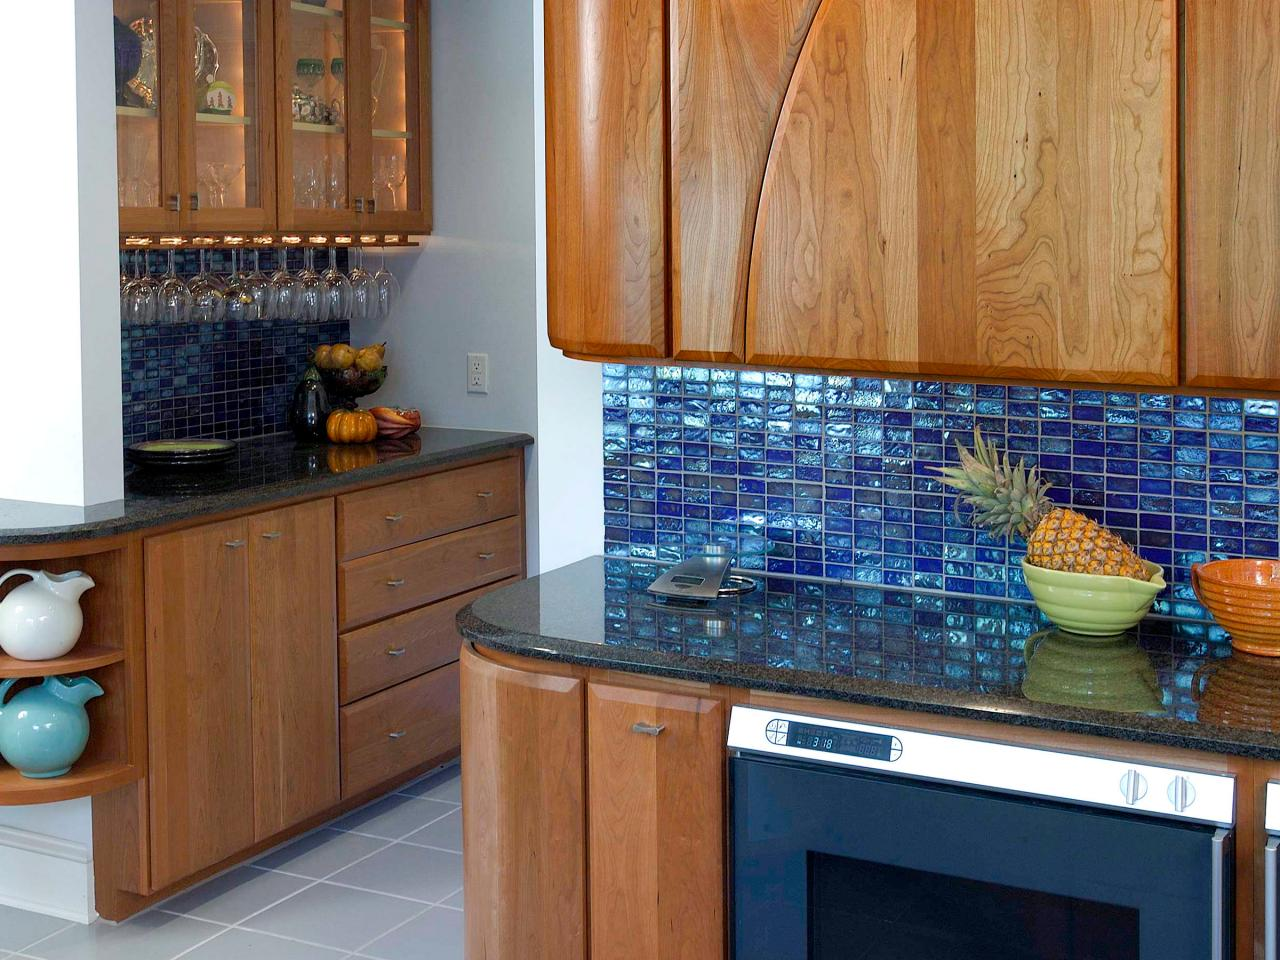 Steep glass tile backsplash an option for larger budgets Backsplash photos kitchen ideas